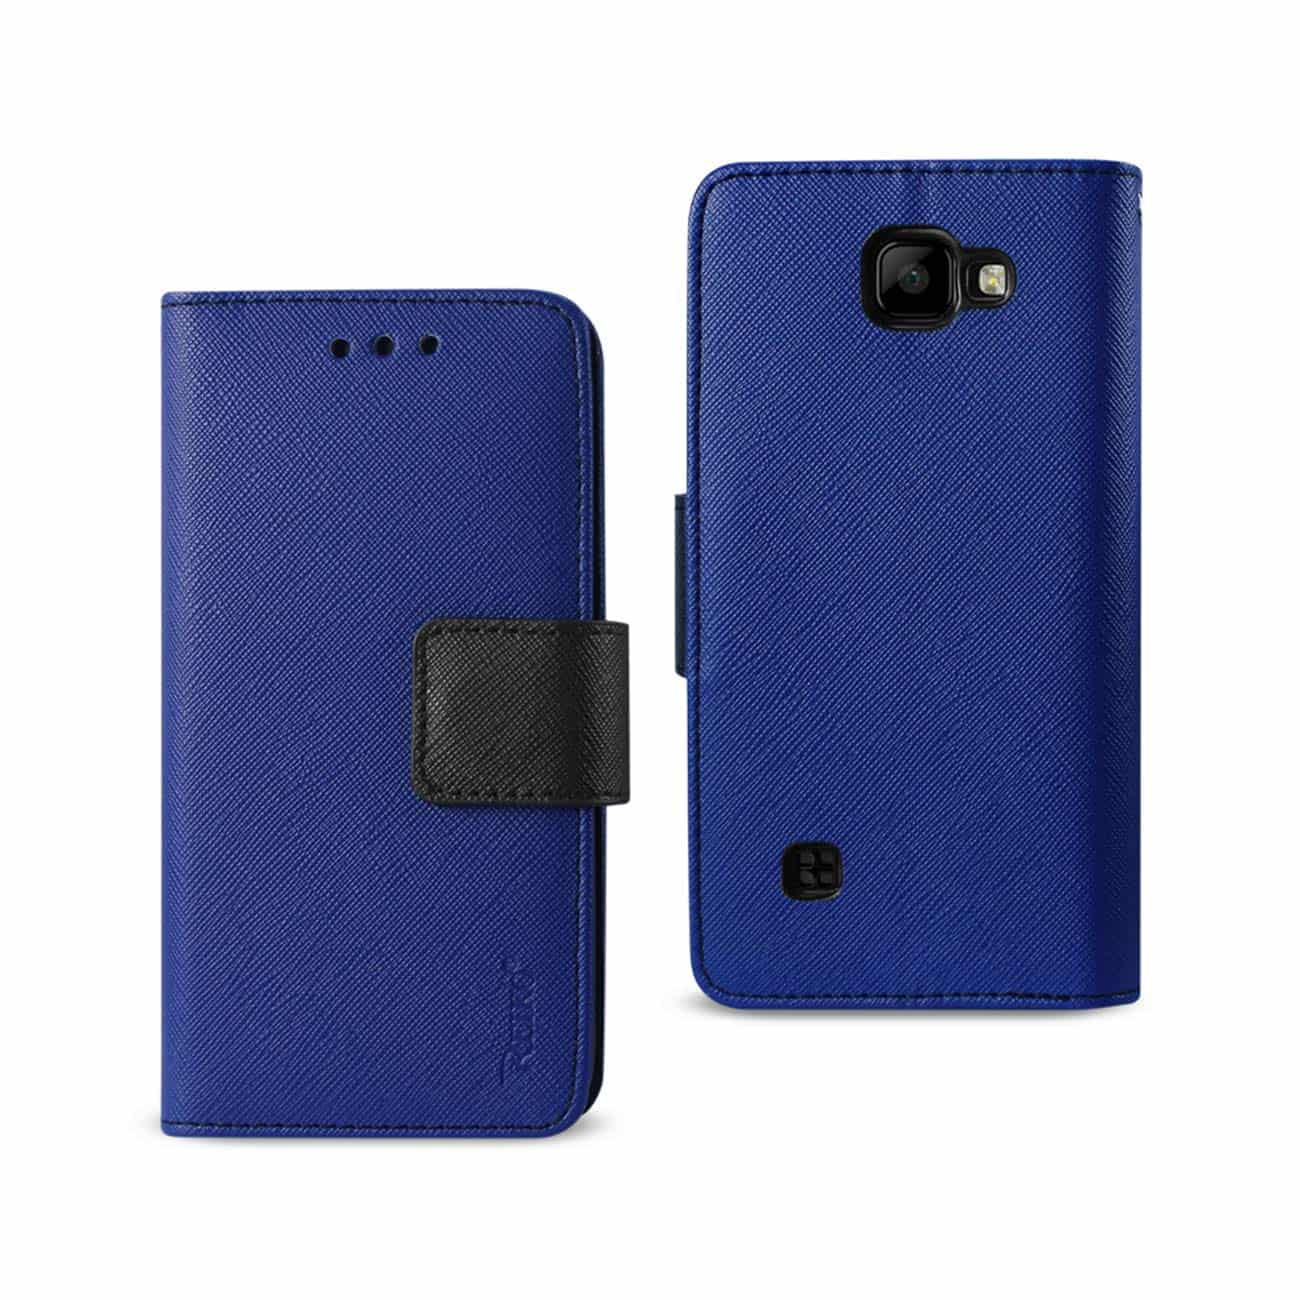 LG K3 3-IN-1 WALLET CASE IN NAVY